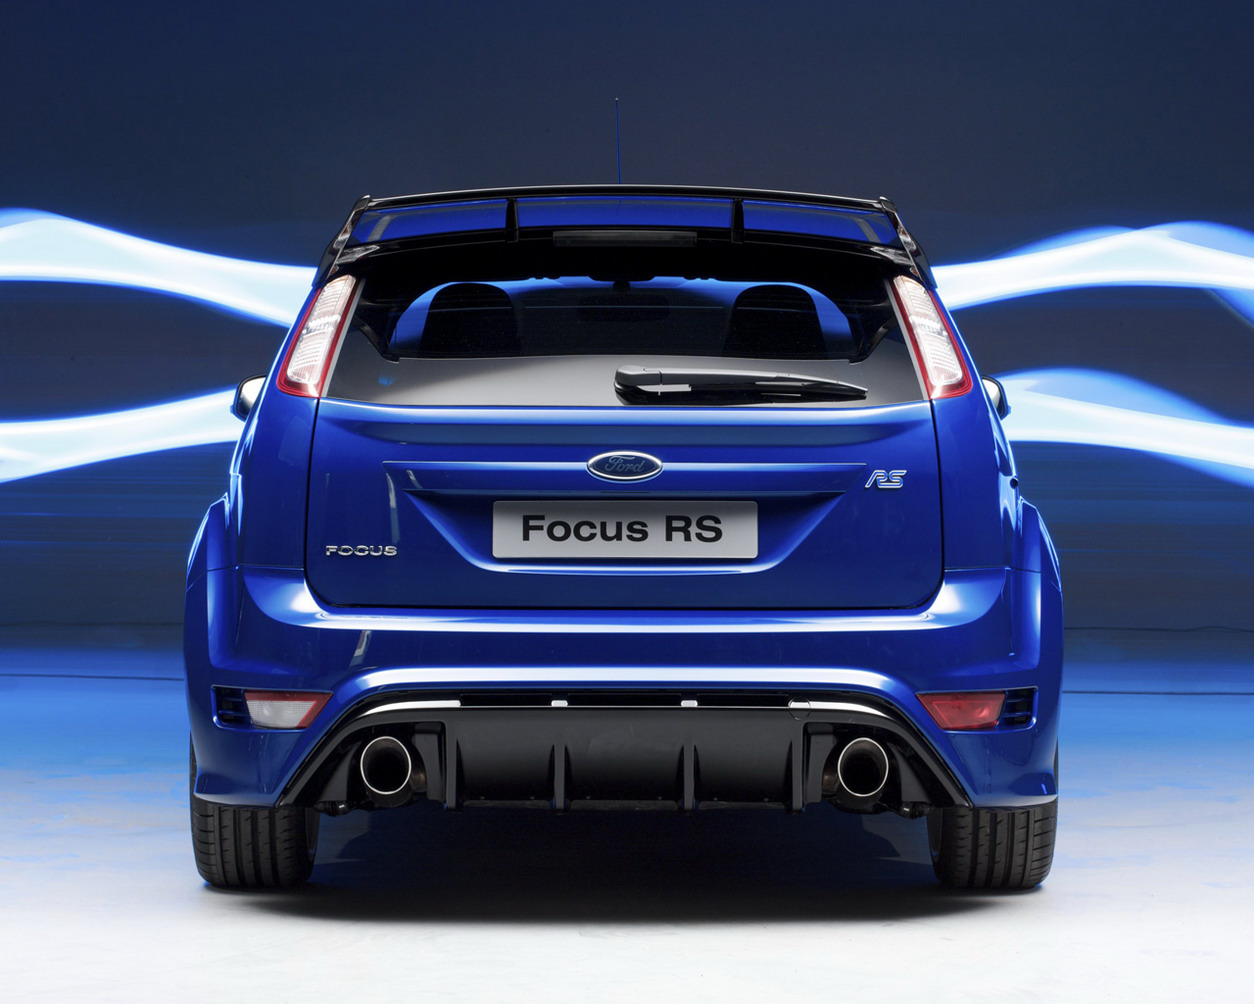 ford focus rs 2010 production img 11 it s your auto. Black Bedroom Furniture Sets. Home Design Ideas